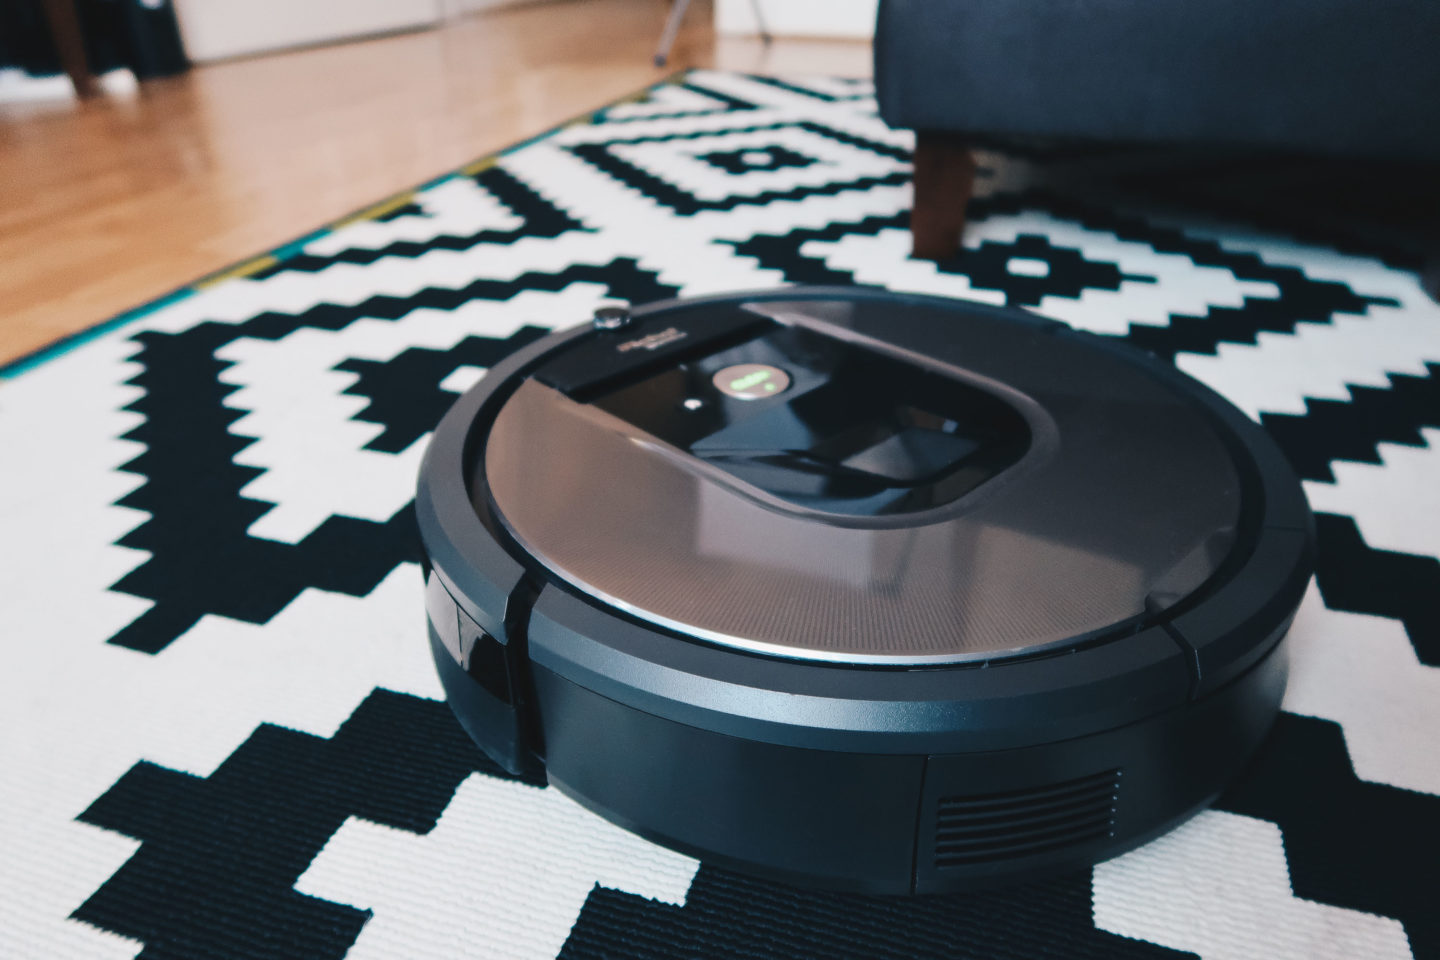 Roomba 980 Review